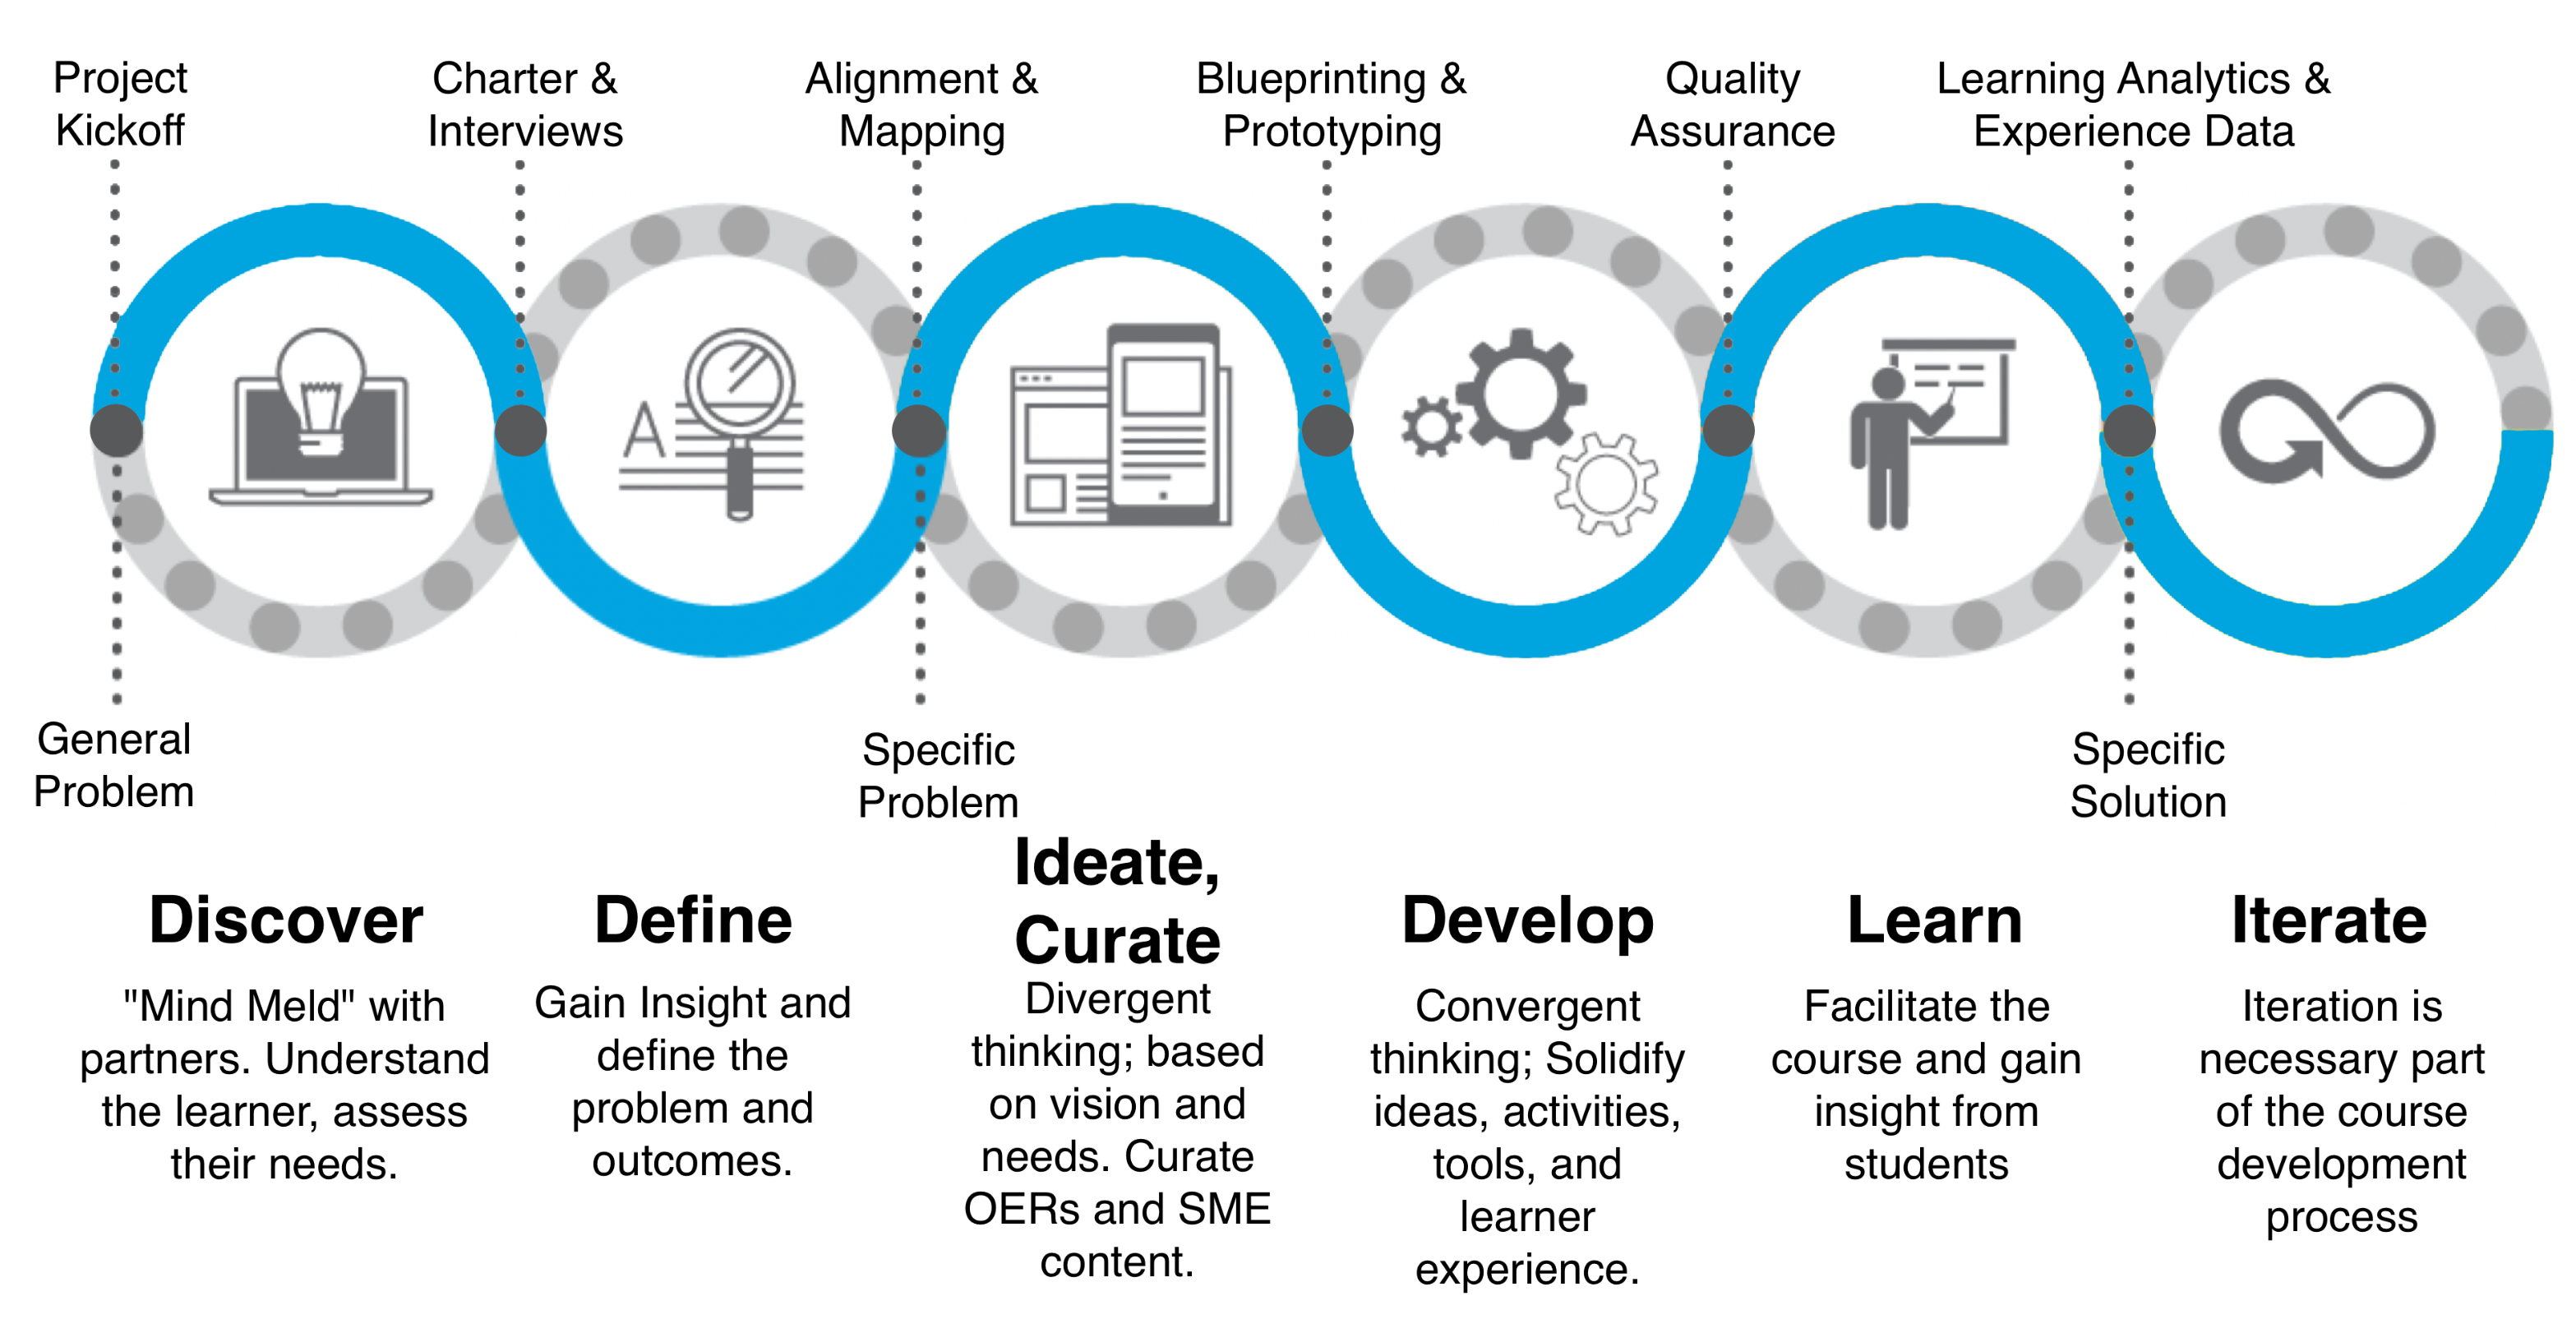 Image of the flow for Design thinking in Instructional Design; starting from left to right are discover, define, ideate, curate, develop, learn, iterate